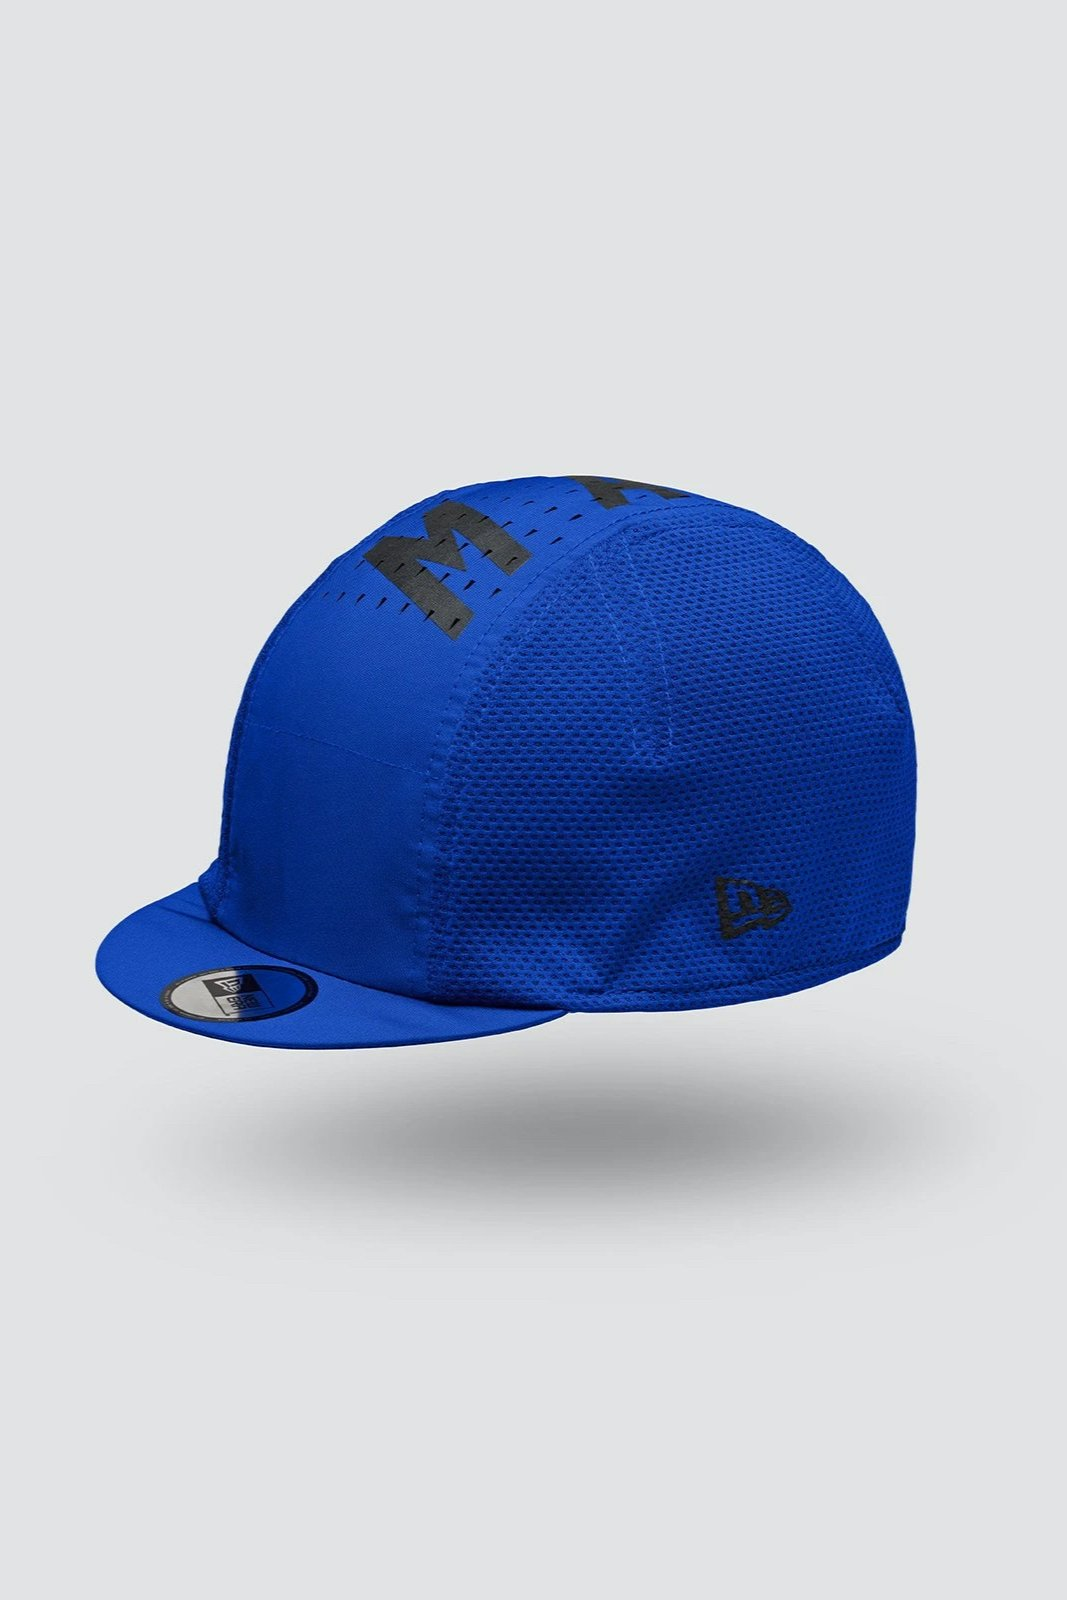 MAAP x New Era Performance Blue サイクルキャップ | CYCLISM